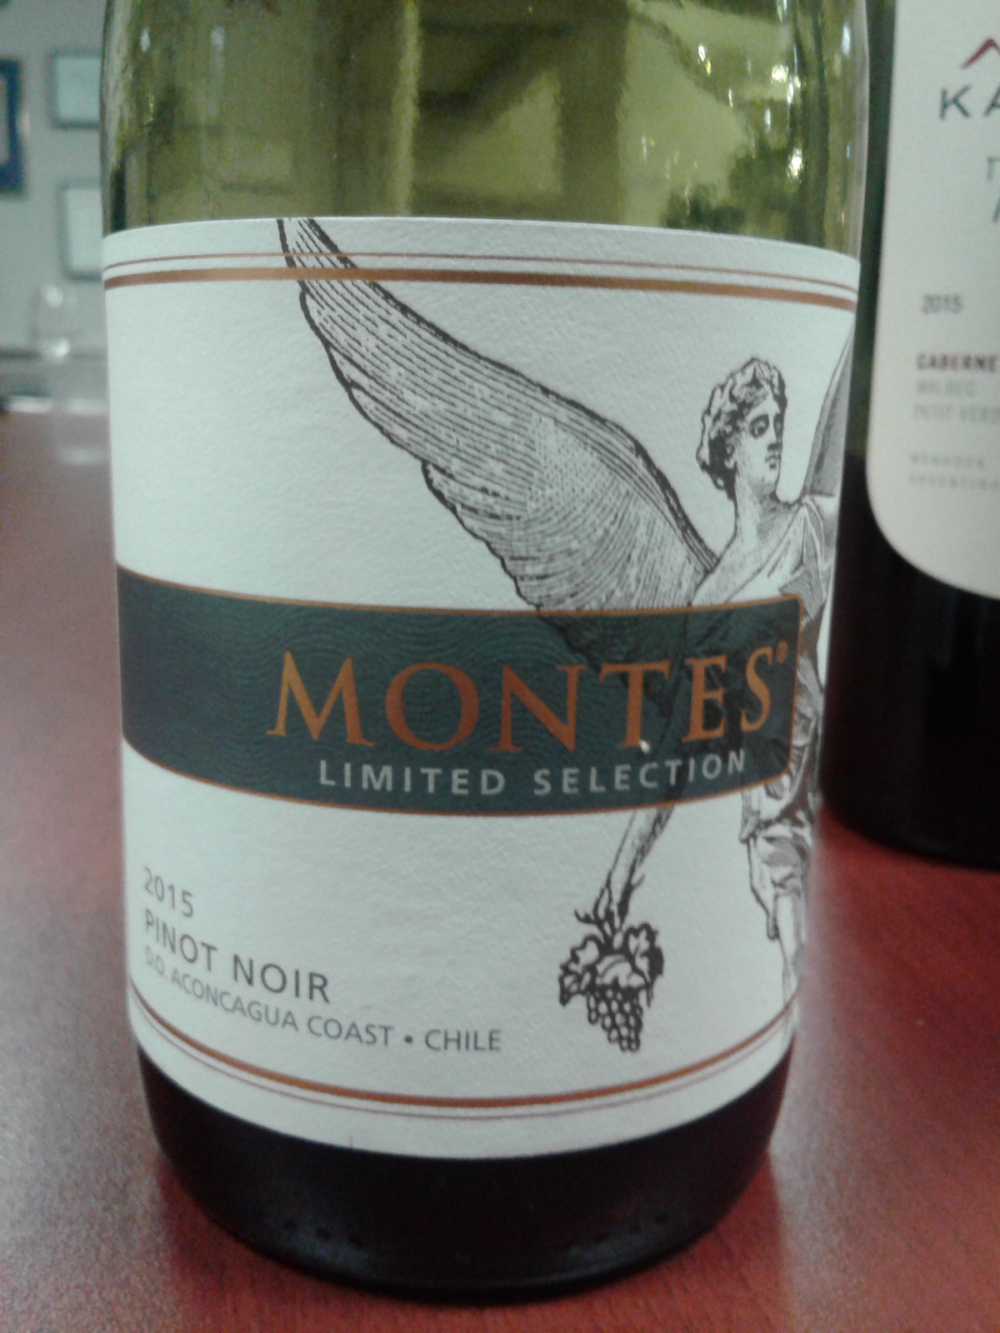 Montes Limited Selection Pinot Noir 2015, Chile